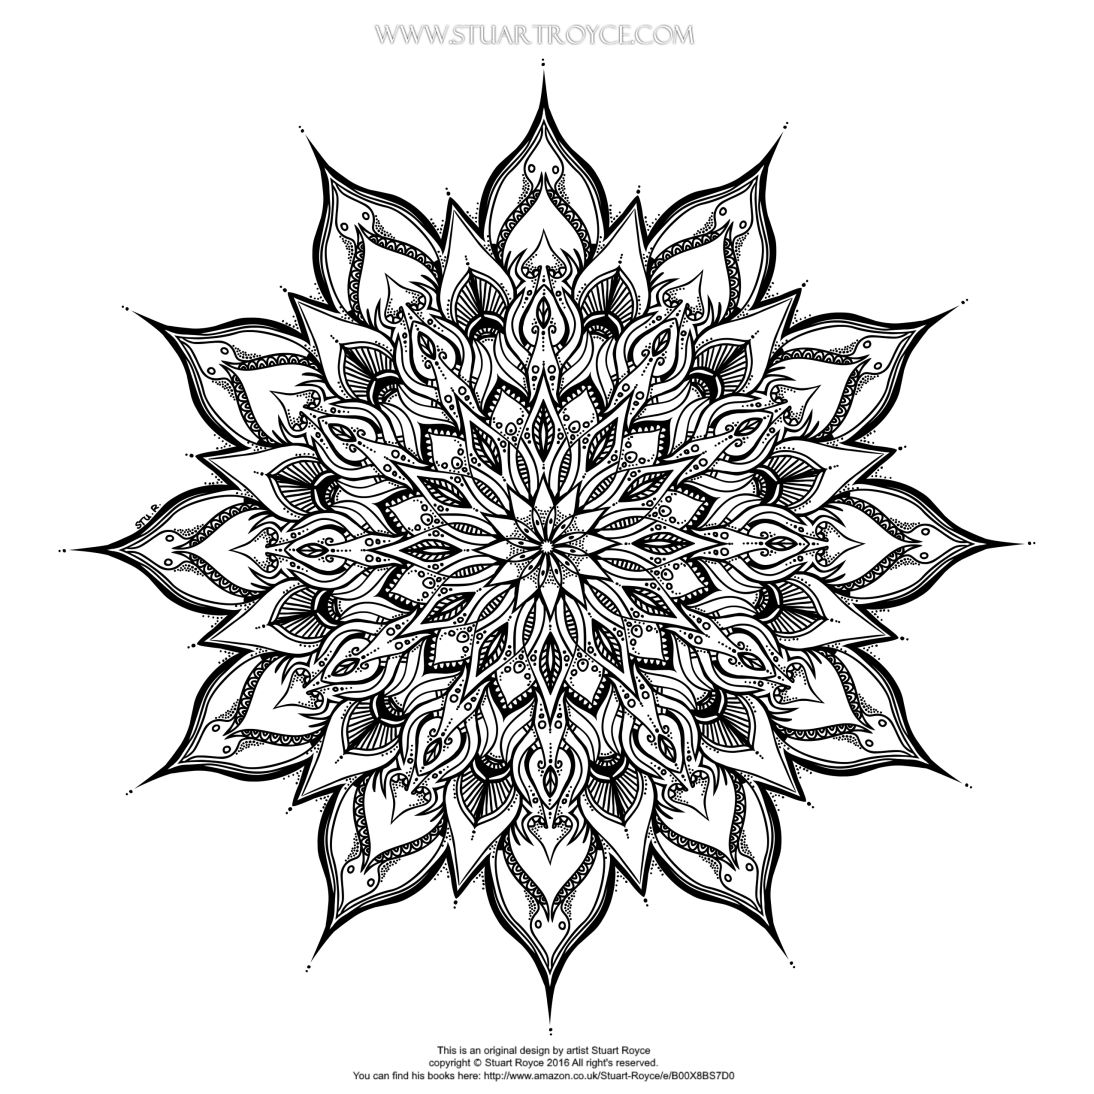 Jewish mandala coloring pages - Free Mandala Coloring Page By Stuart Royce Artist Illustrator For Eclectica Adult Coloring Books